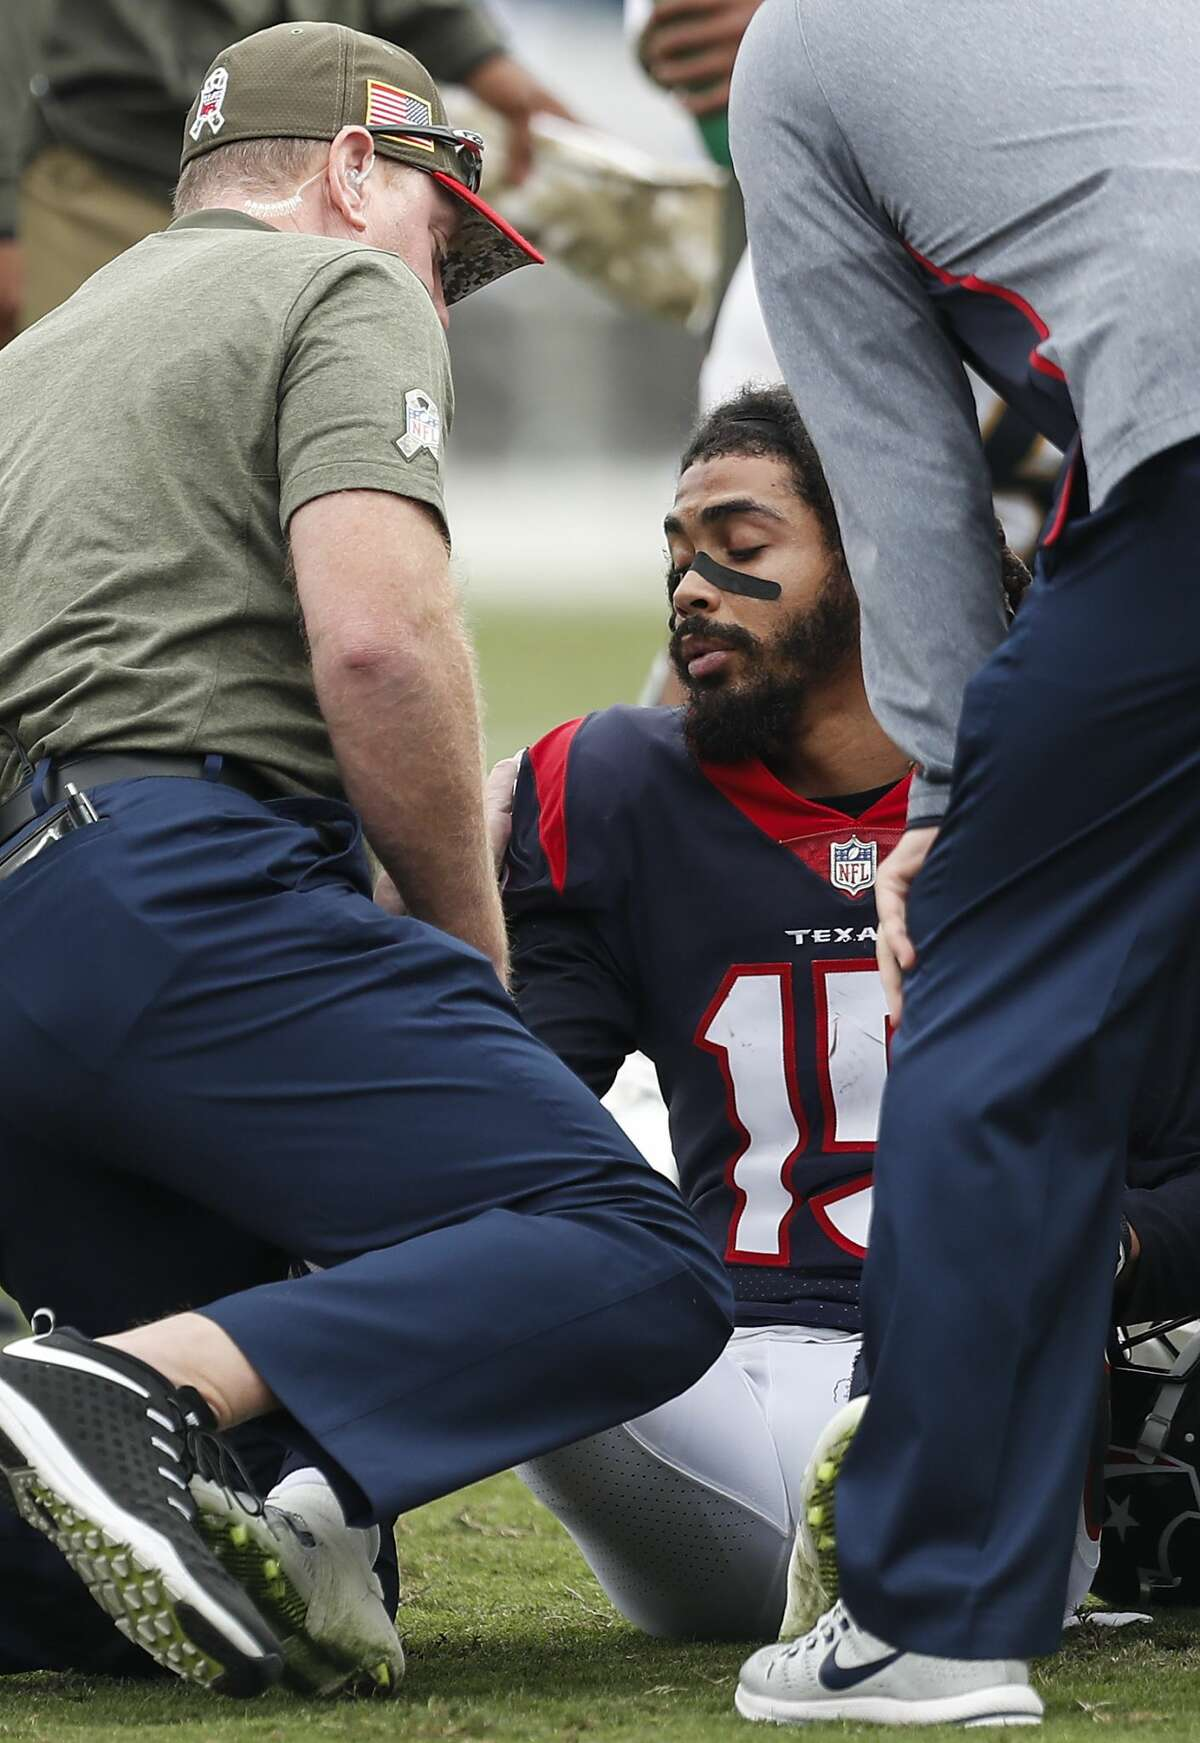 Houston Texans wide receiver Will Fuller (15) is tenddd to by trainer Geoff Kaplan after suffering an injury against the Los Angeles Rams during the second quarter of an NFL football game at the Los Angeles Memorial Coliseum on Sunday, Nov. 12, 2017, in Los Angeles, Mass. ( Brett Coomer / Houston Chronicle )